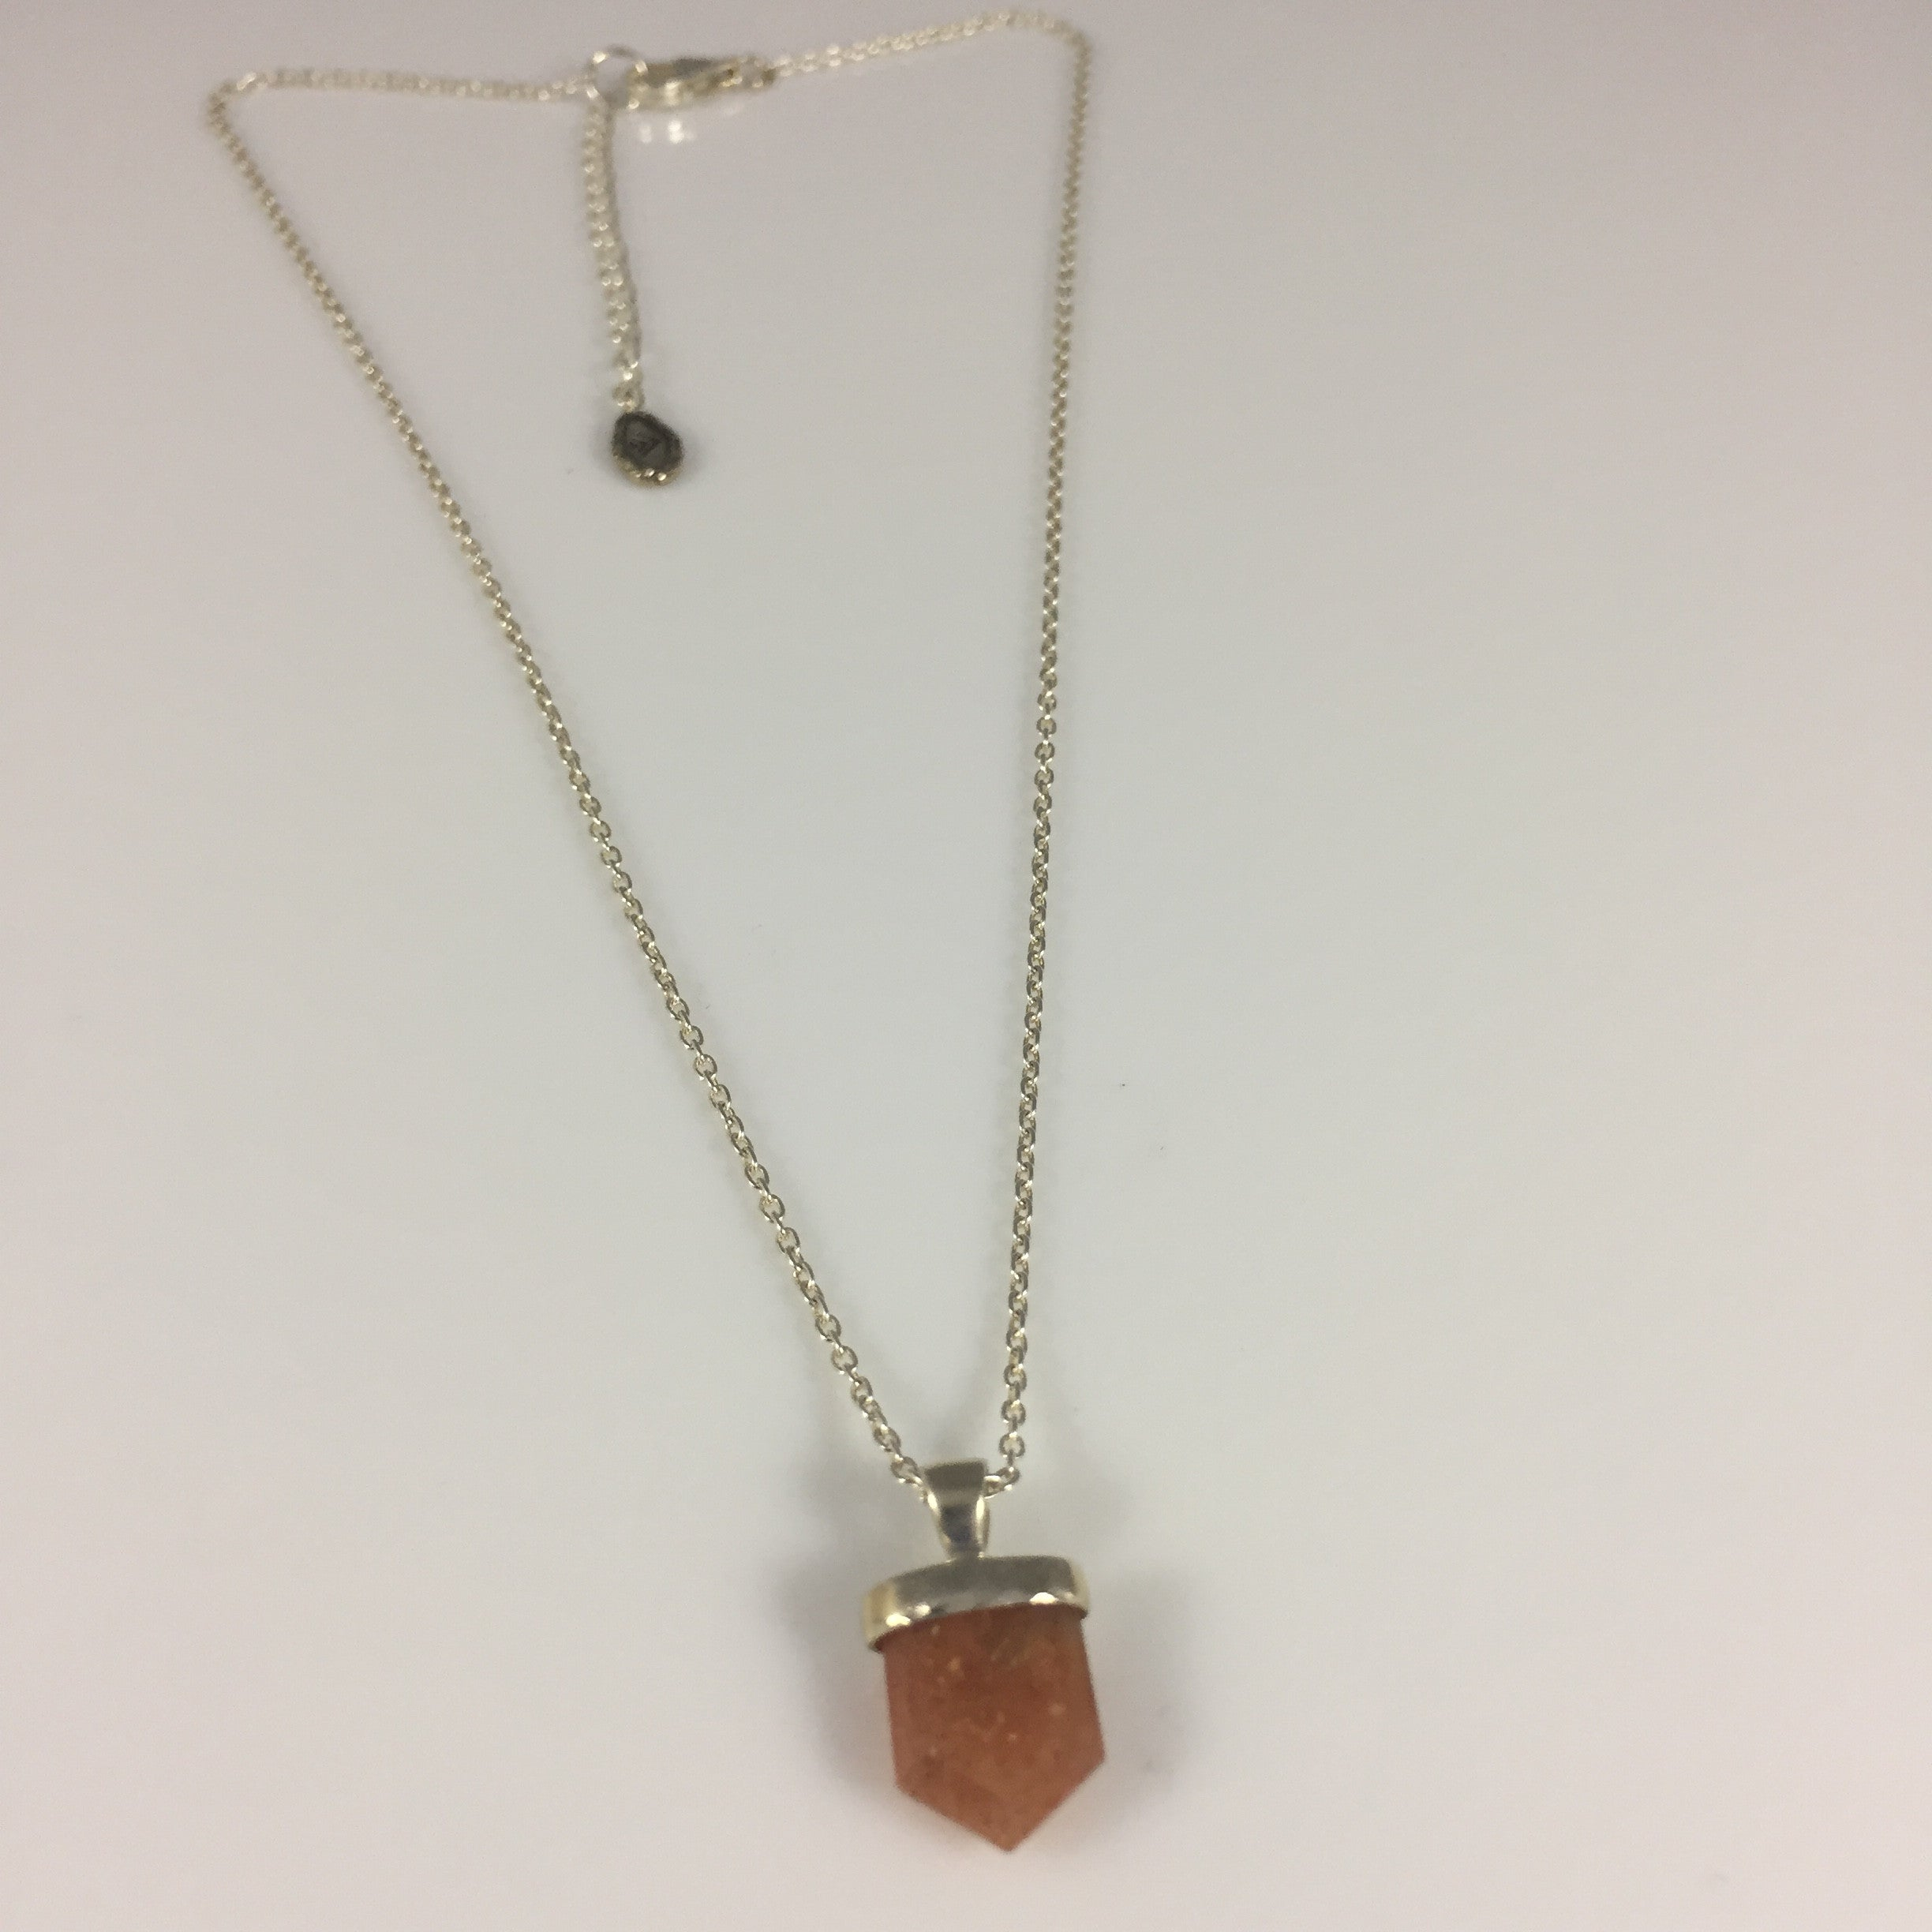 product that pendant filled stone handmade collarbone gold store gemstone length sunstone sunshine necklace goldfilled jewelry